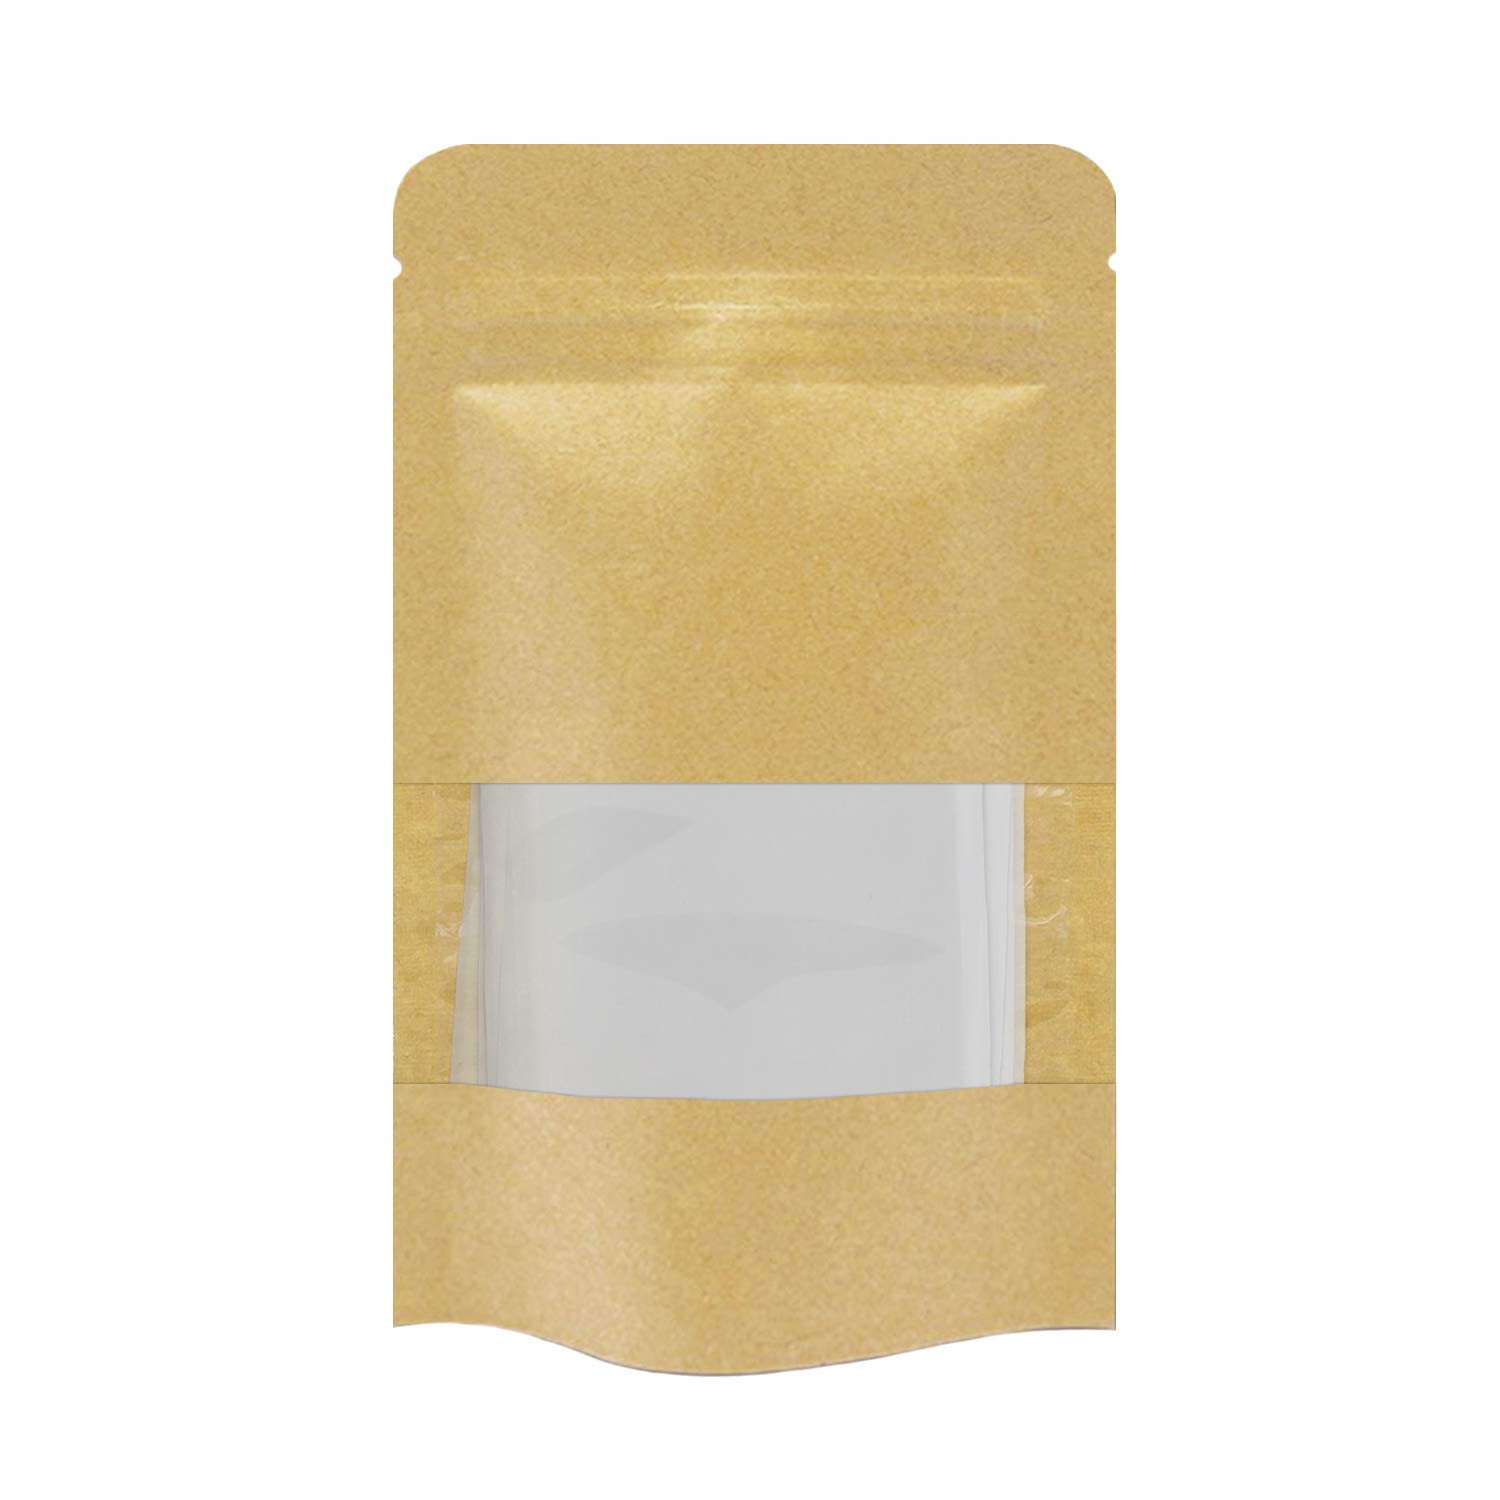 Zero Blowouts Rosineer Premium Nylon Filter Bags Double Stitching 15 PCS 2 x 3 72 Micron Mesh Size